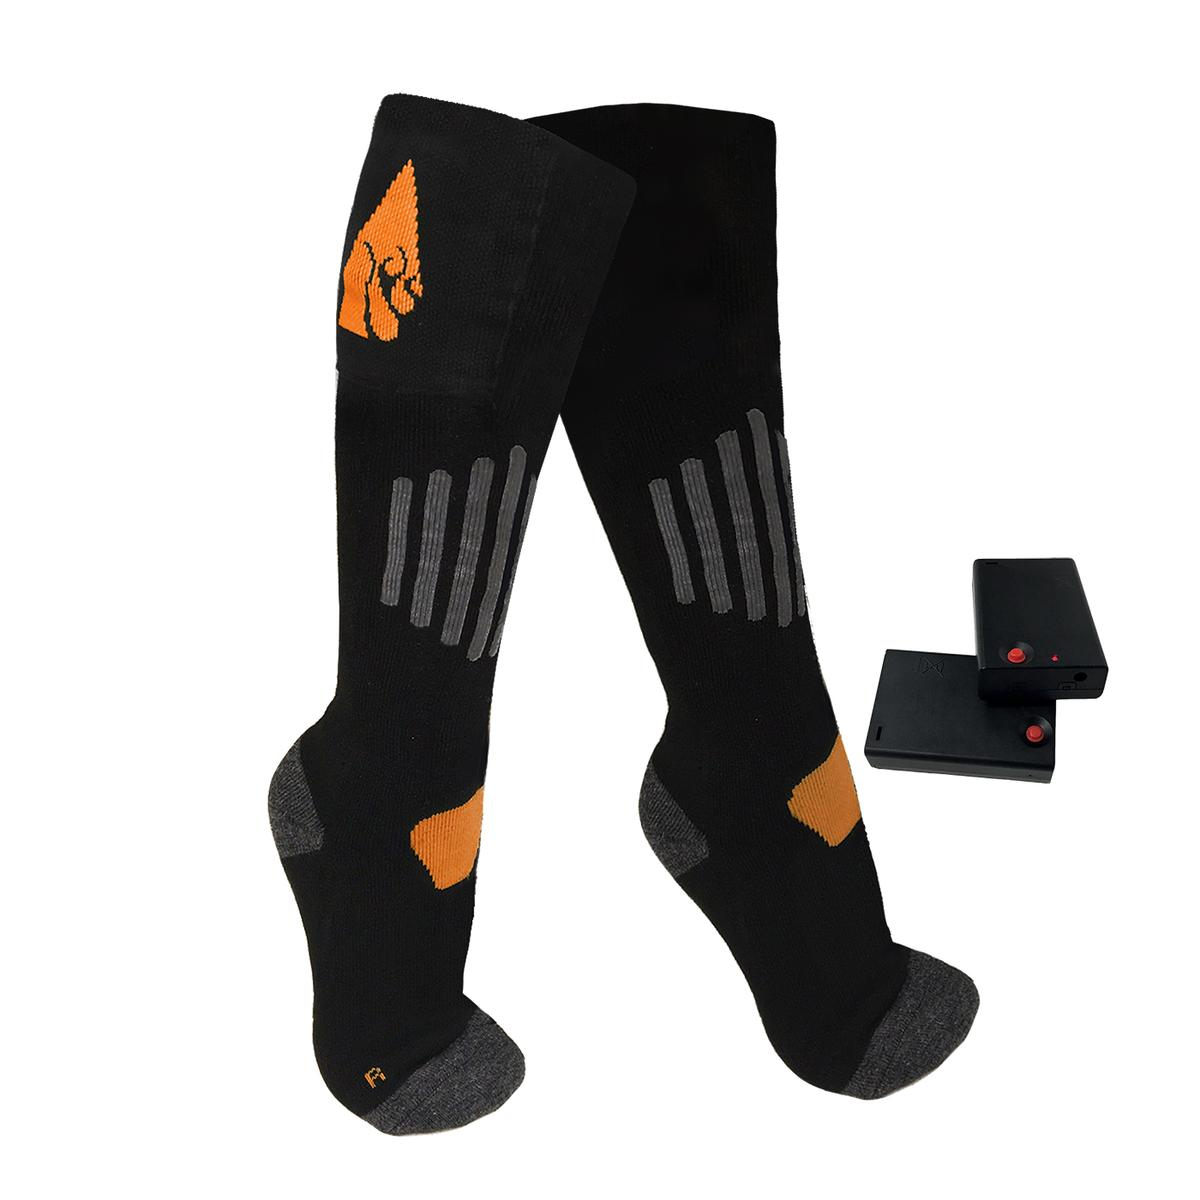 Open Box ActionHeat AA Heated Socks - Info